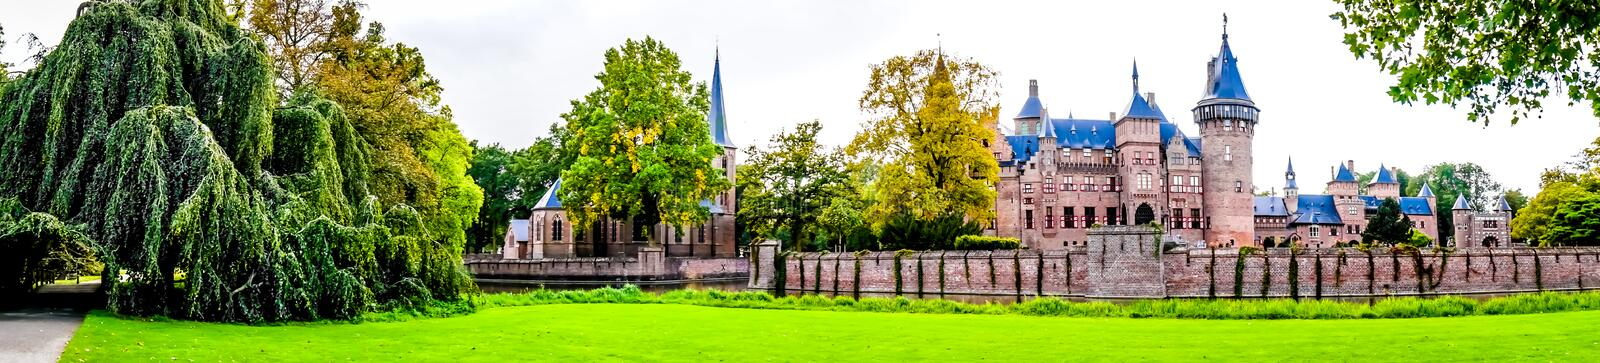 Magnificent Castle De Haar surrounded by a Moat and Beautiful Gardens. A 14th century Castle and restored in the late 19th century stock photos